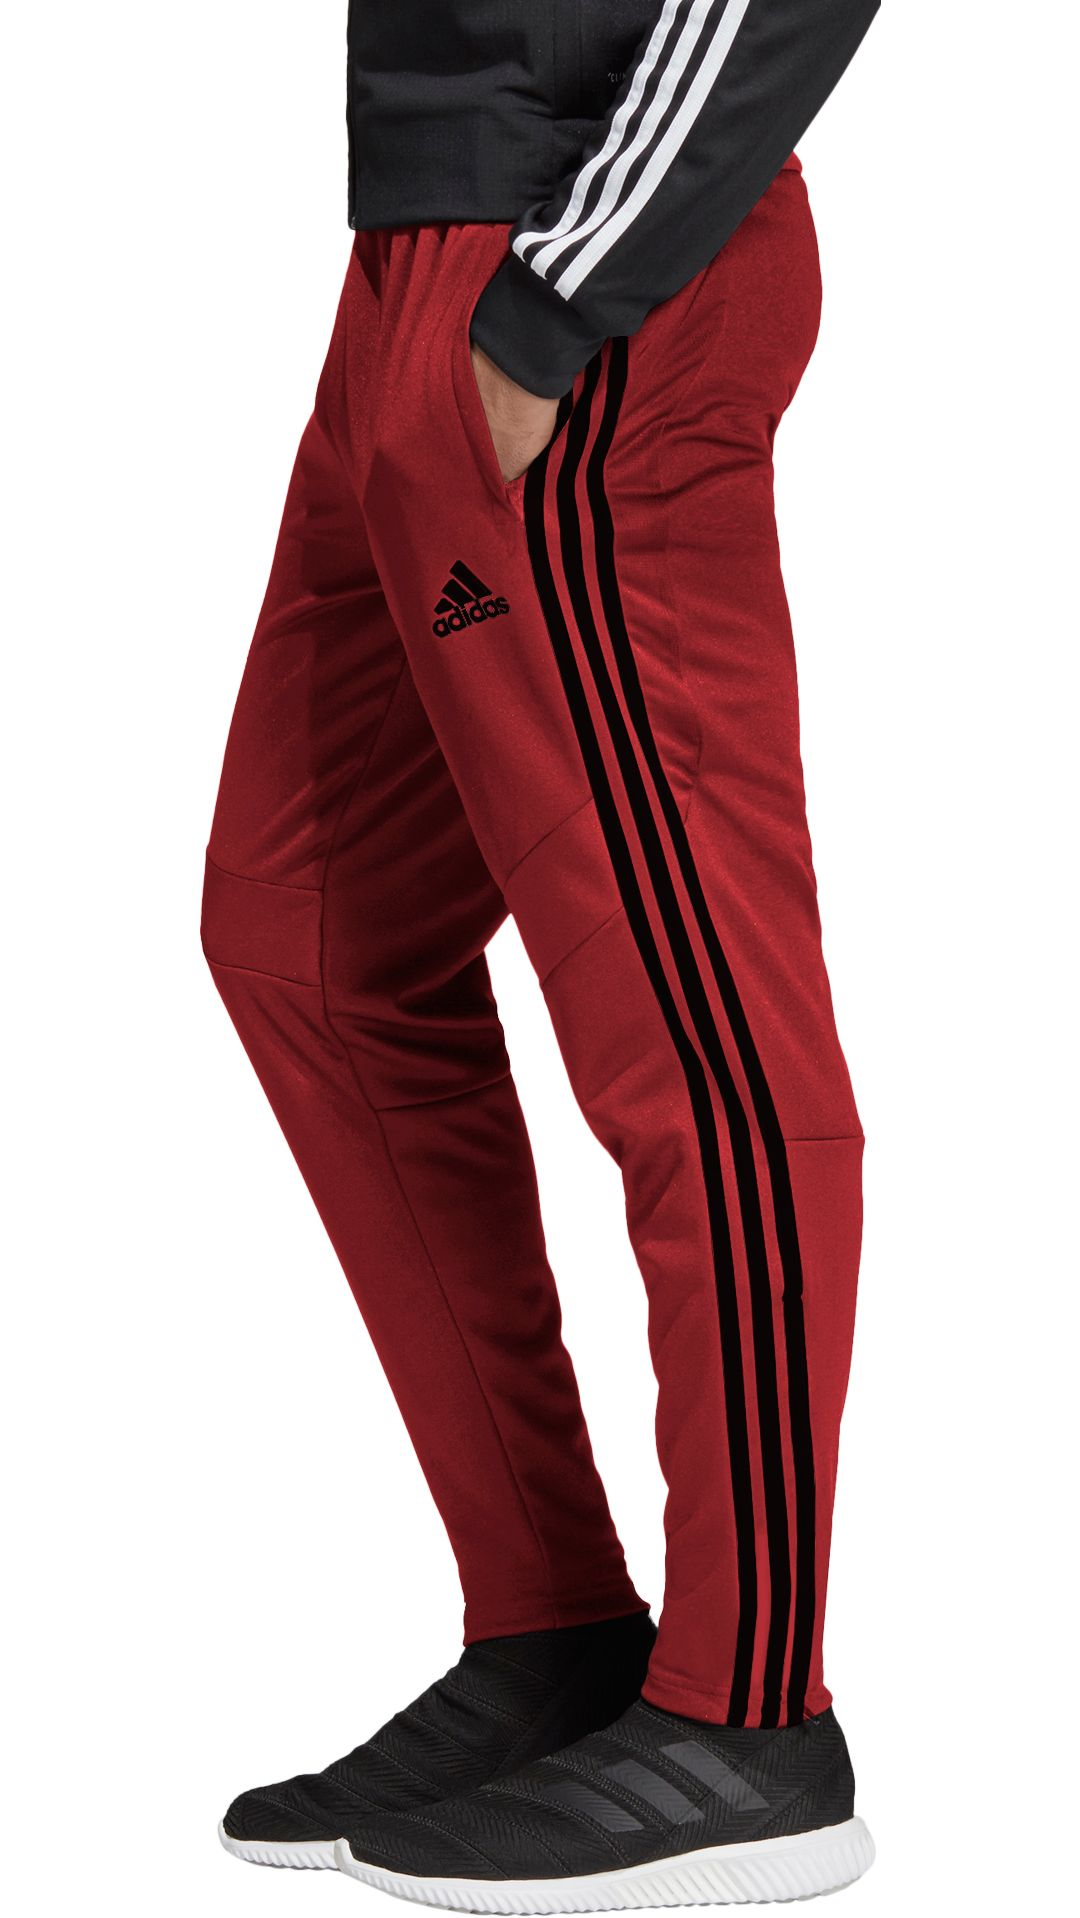 ebecfab133c3c adidas Men's Tiro 19 Training Pants | DICK'S Sporting Goods